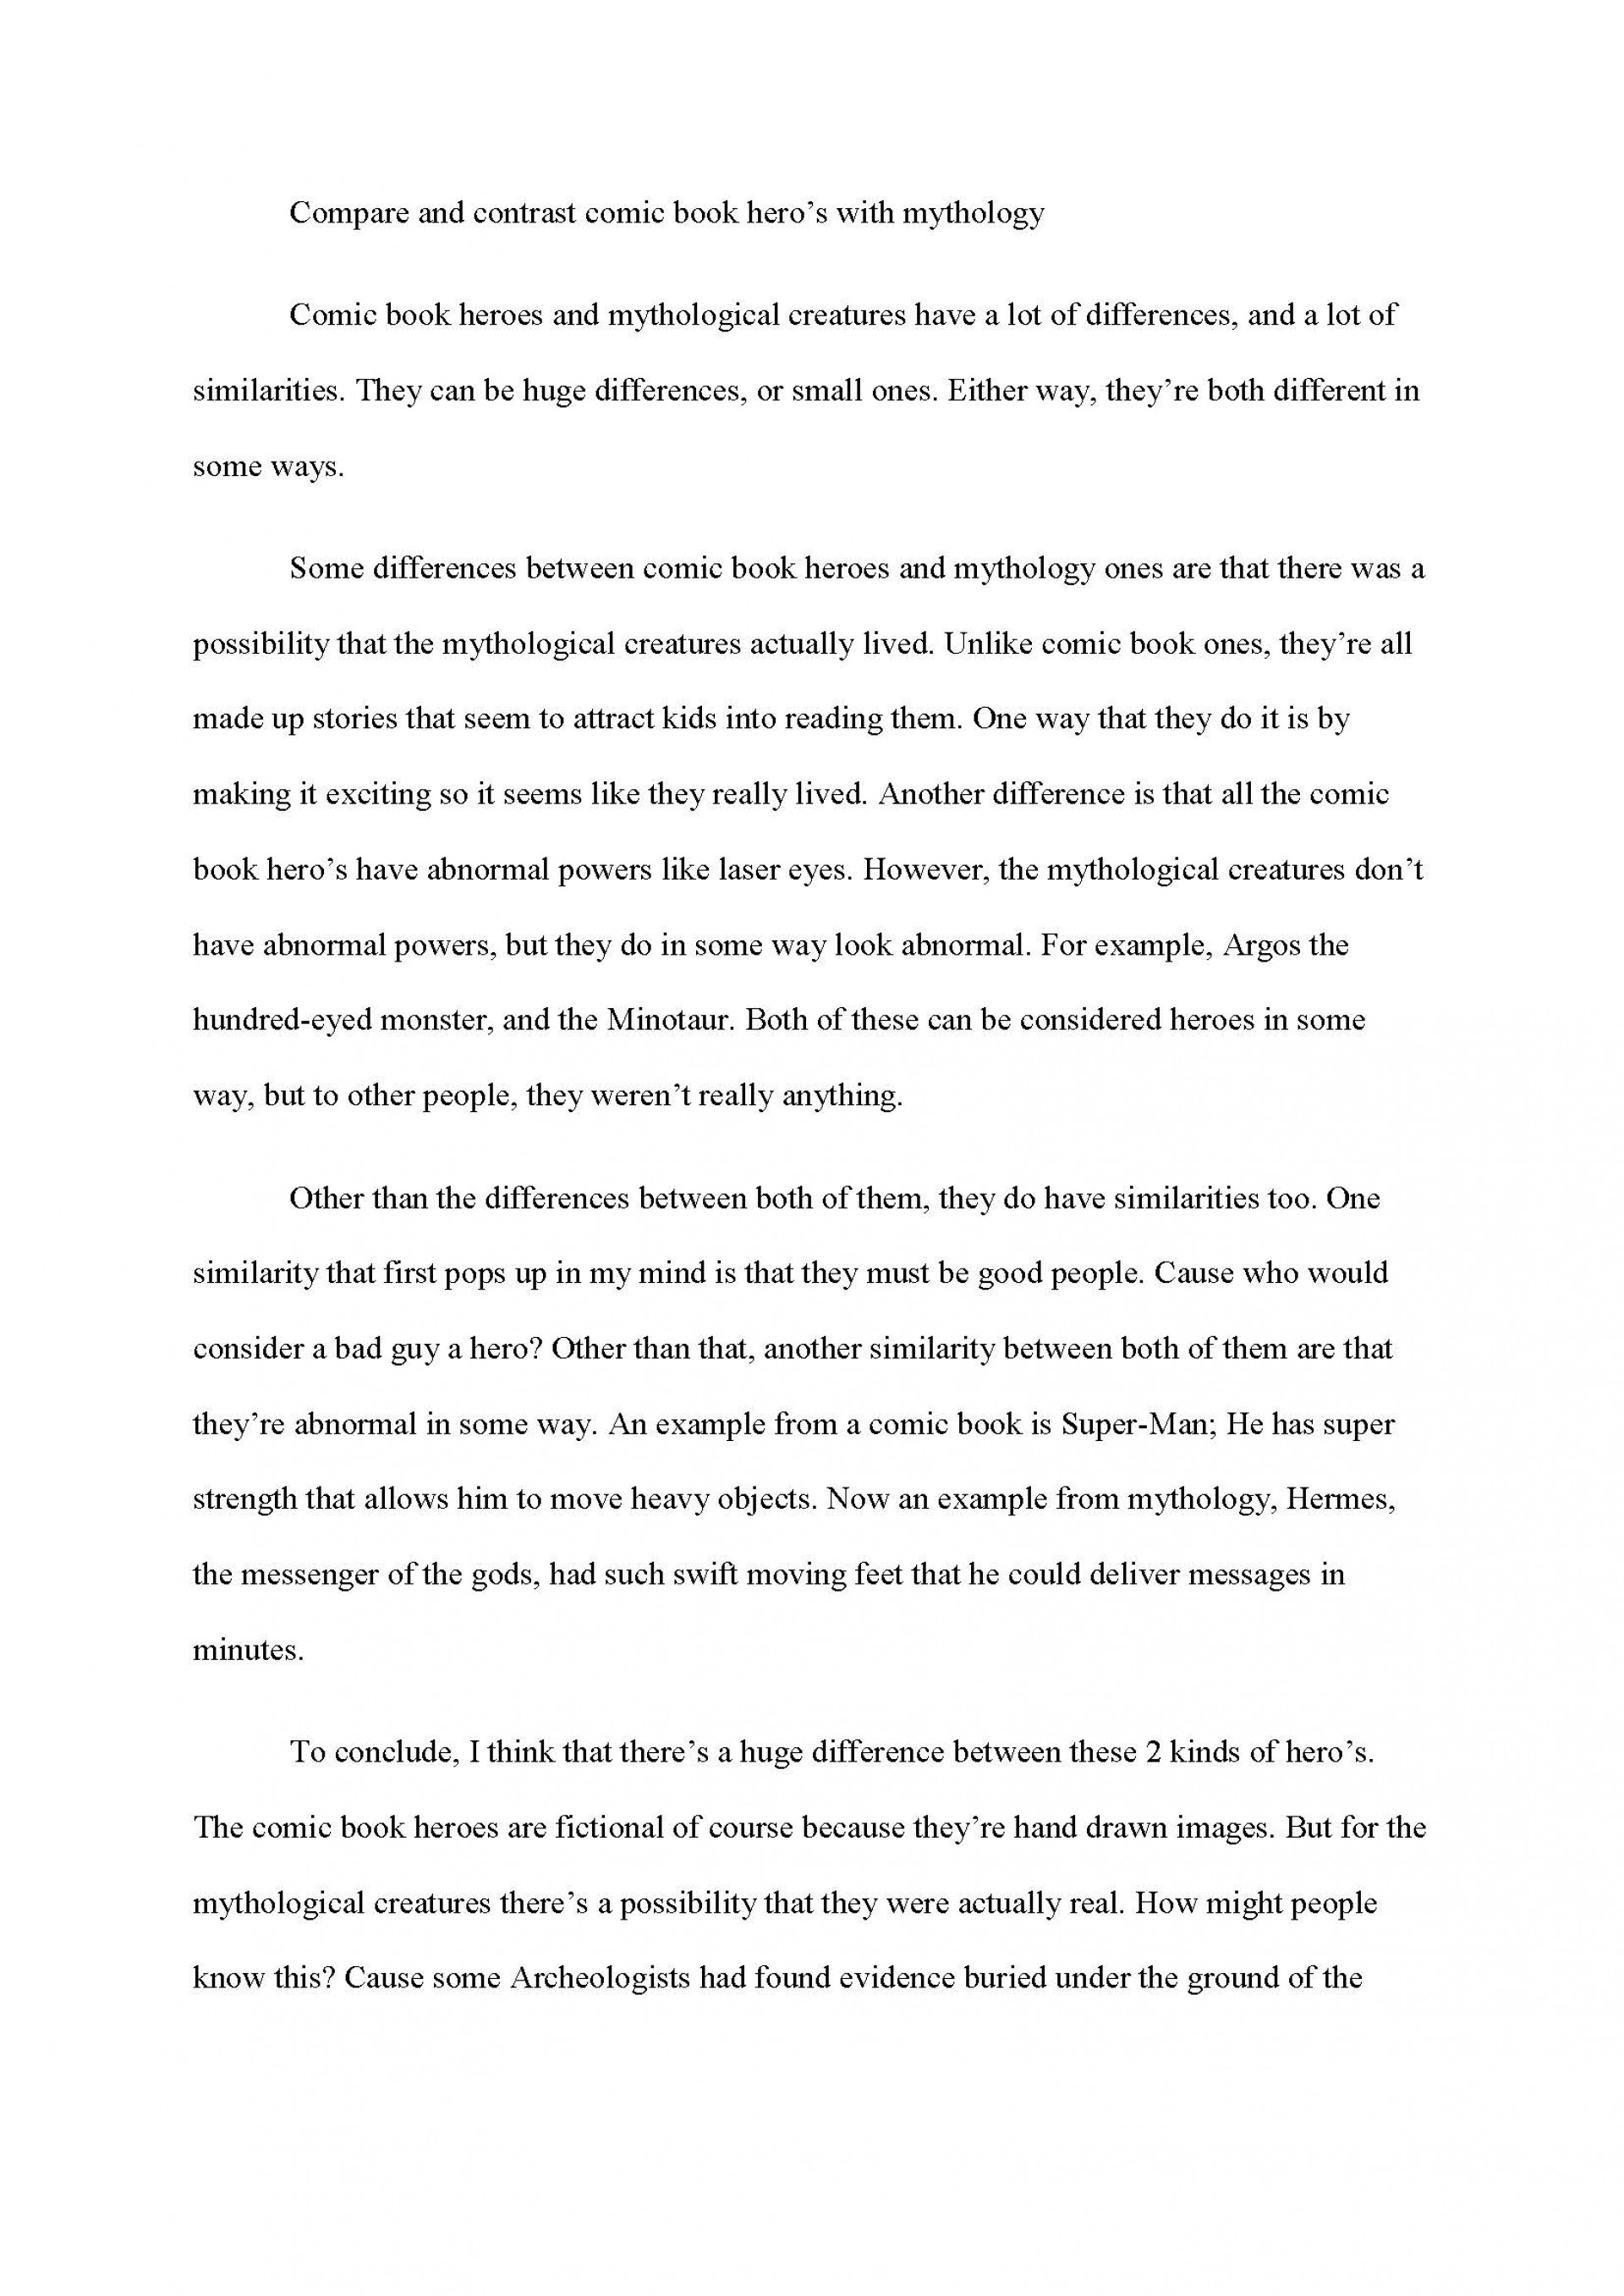 020 Compare And Contrast Essay Sample Example Uc Imposing Essays Prompt 1 6 3 1920